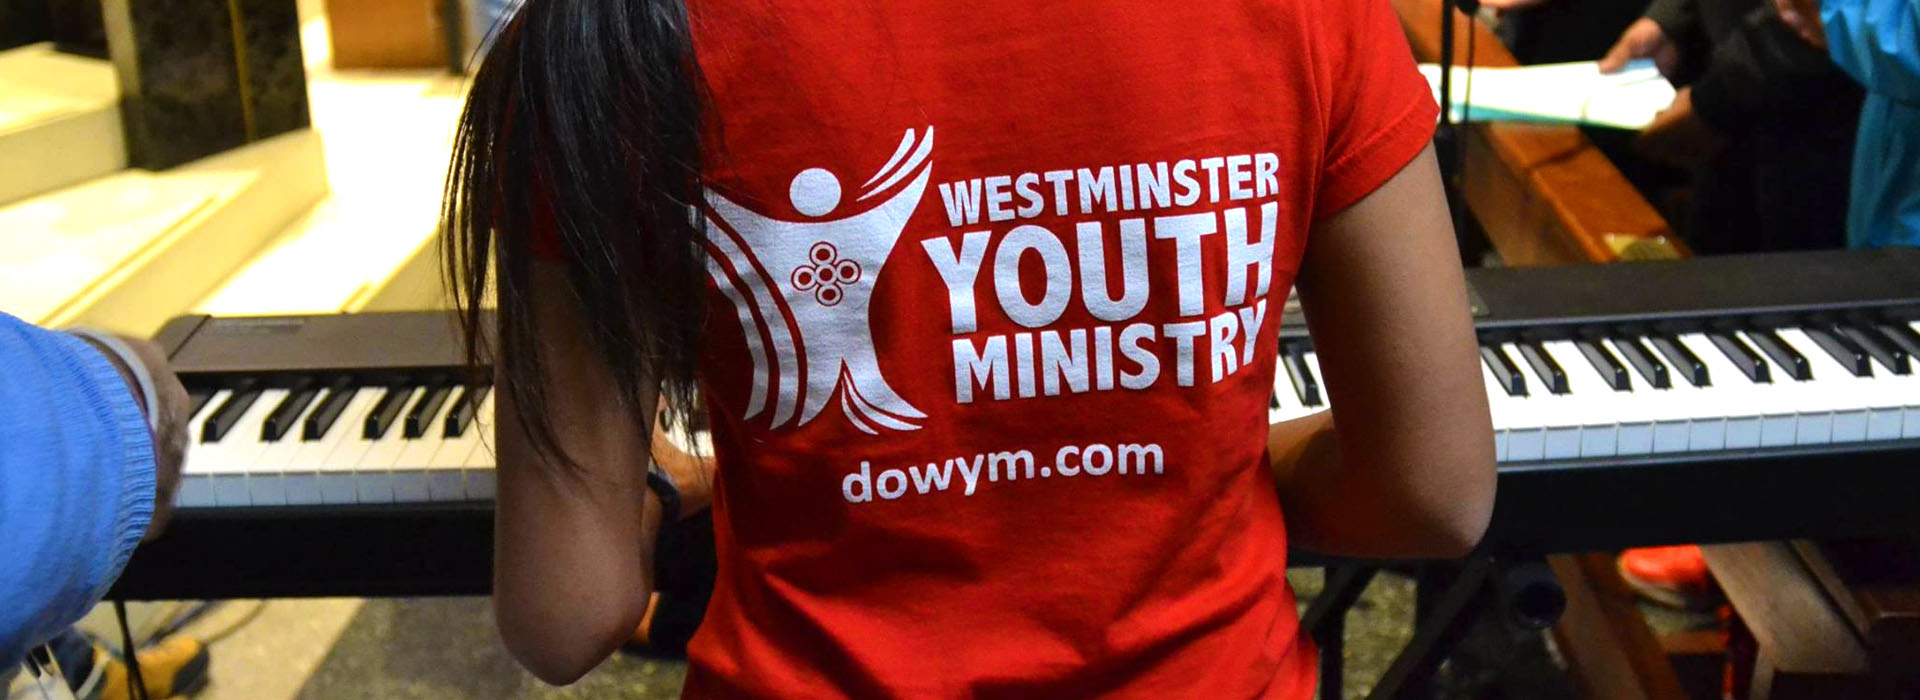 Looking for new Catholic volunteering opportunities? Join Westminster Youth Ministry's team of volunteers in London and Hertfordshire.